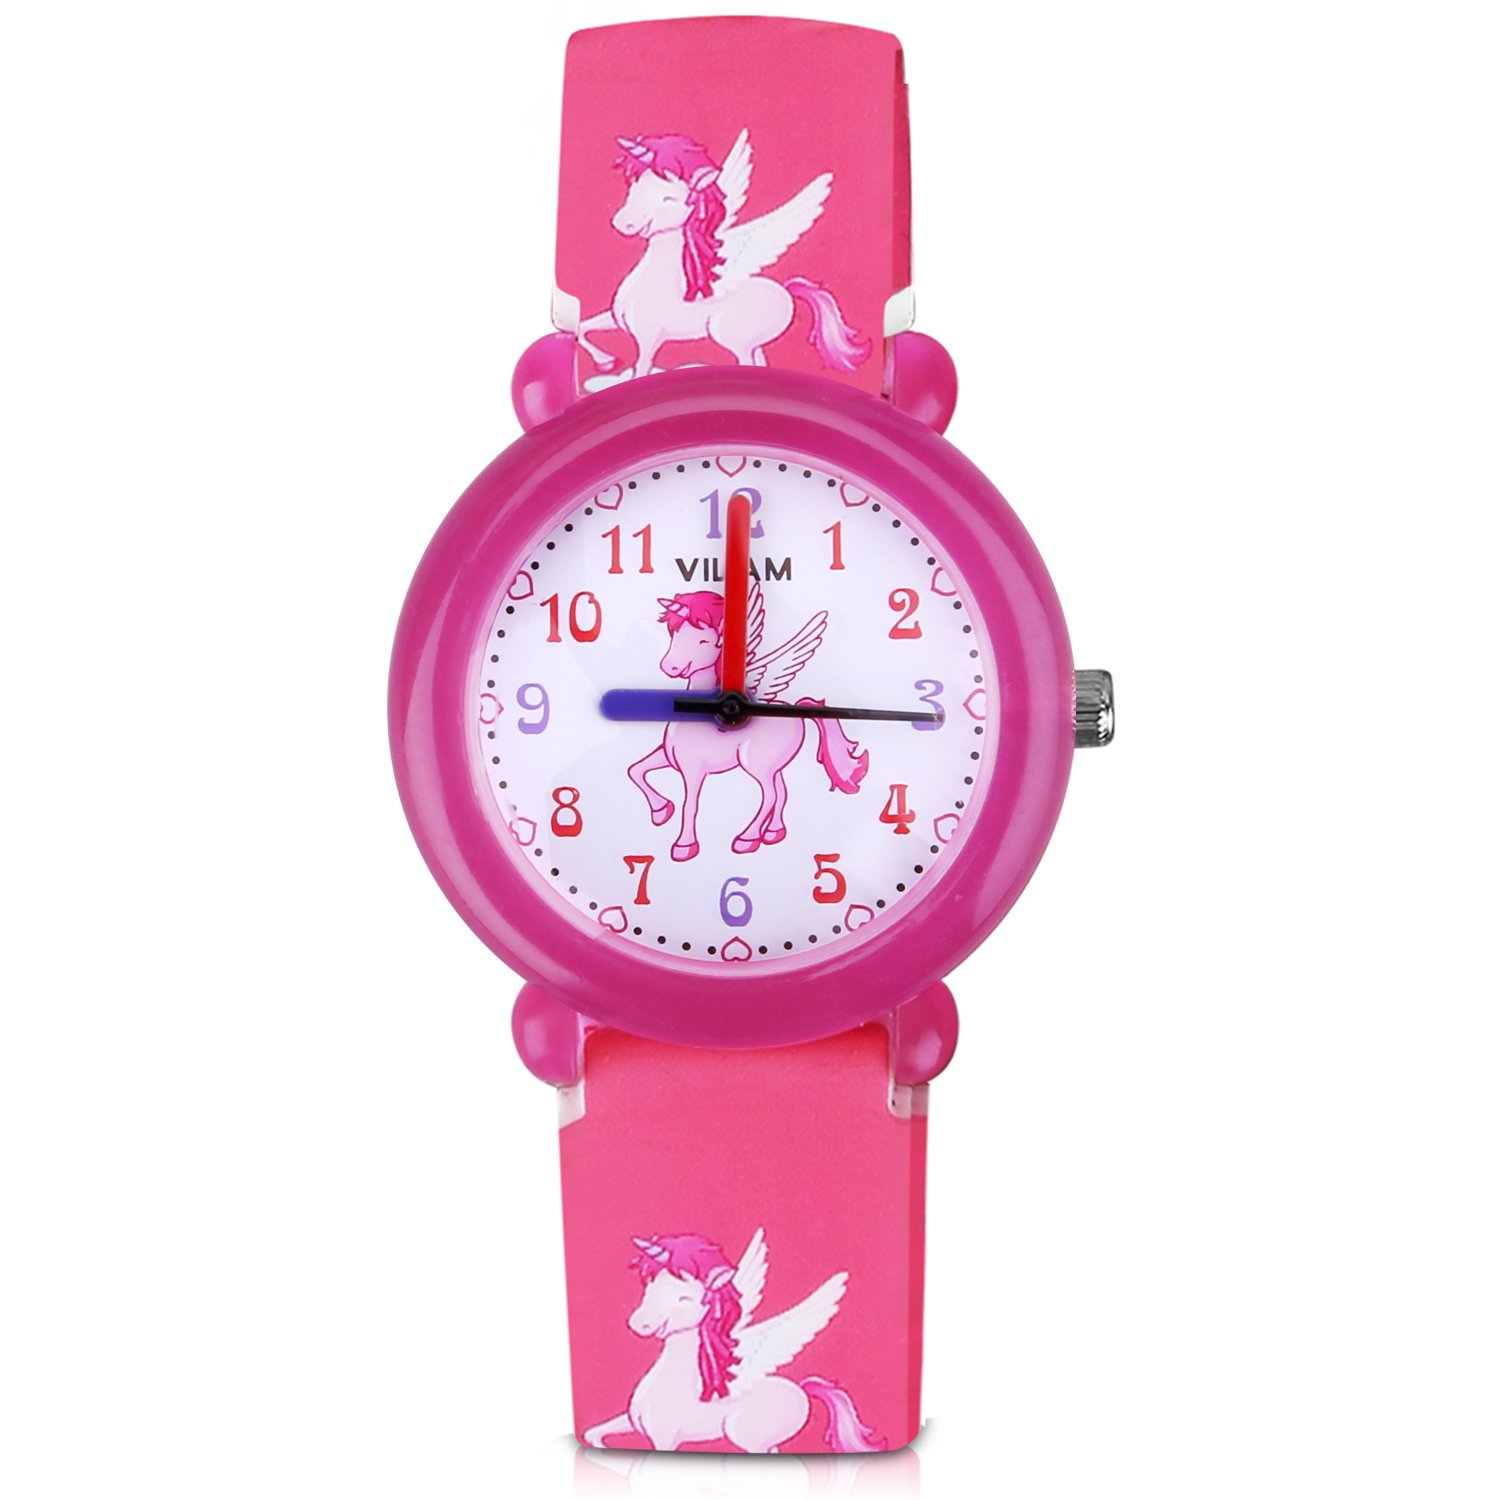 PerSuper Kids Watch 30M Waterproof teenagers Young Time Teacher Watches PU Band Children Cartoon Wristwatch Child Silicone Wrist Watches Gift for Boys Girls Little Child(pink) by PerSuper